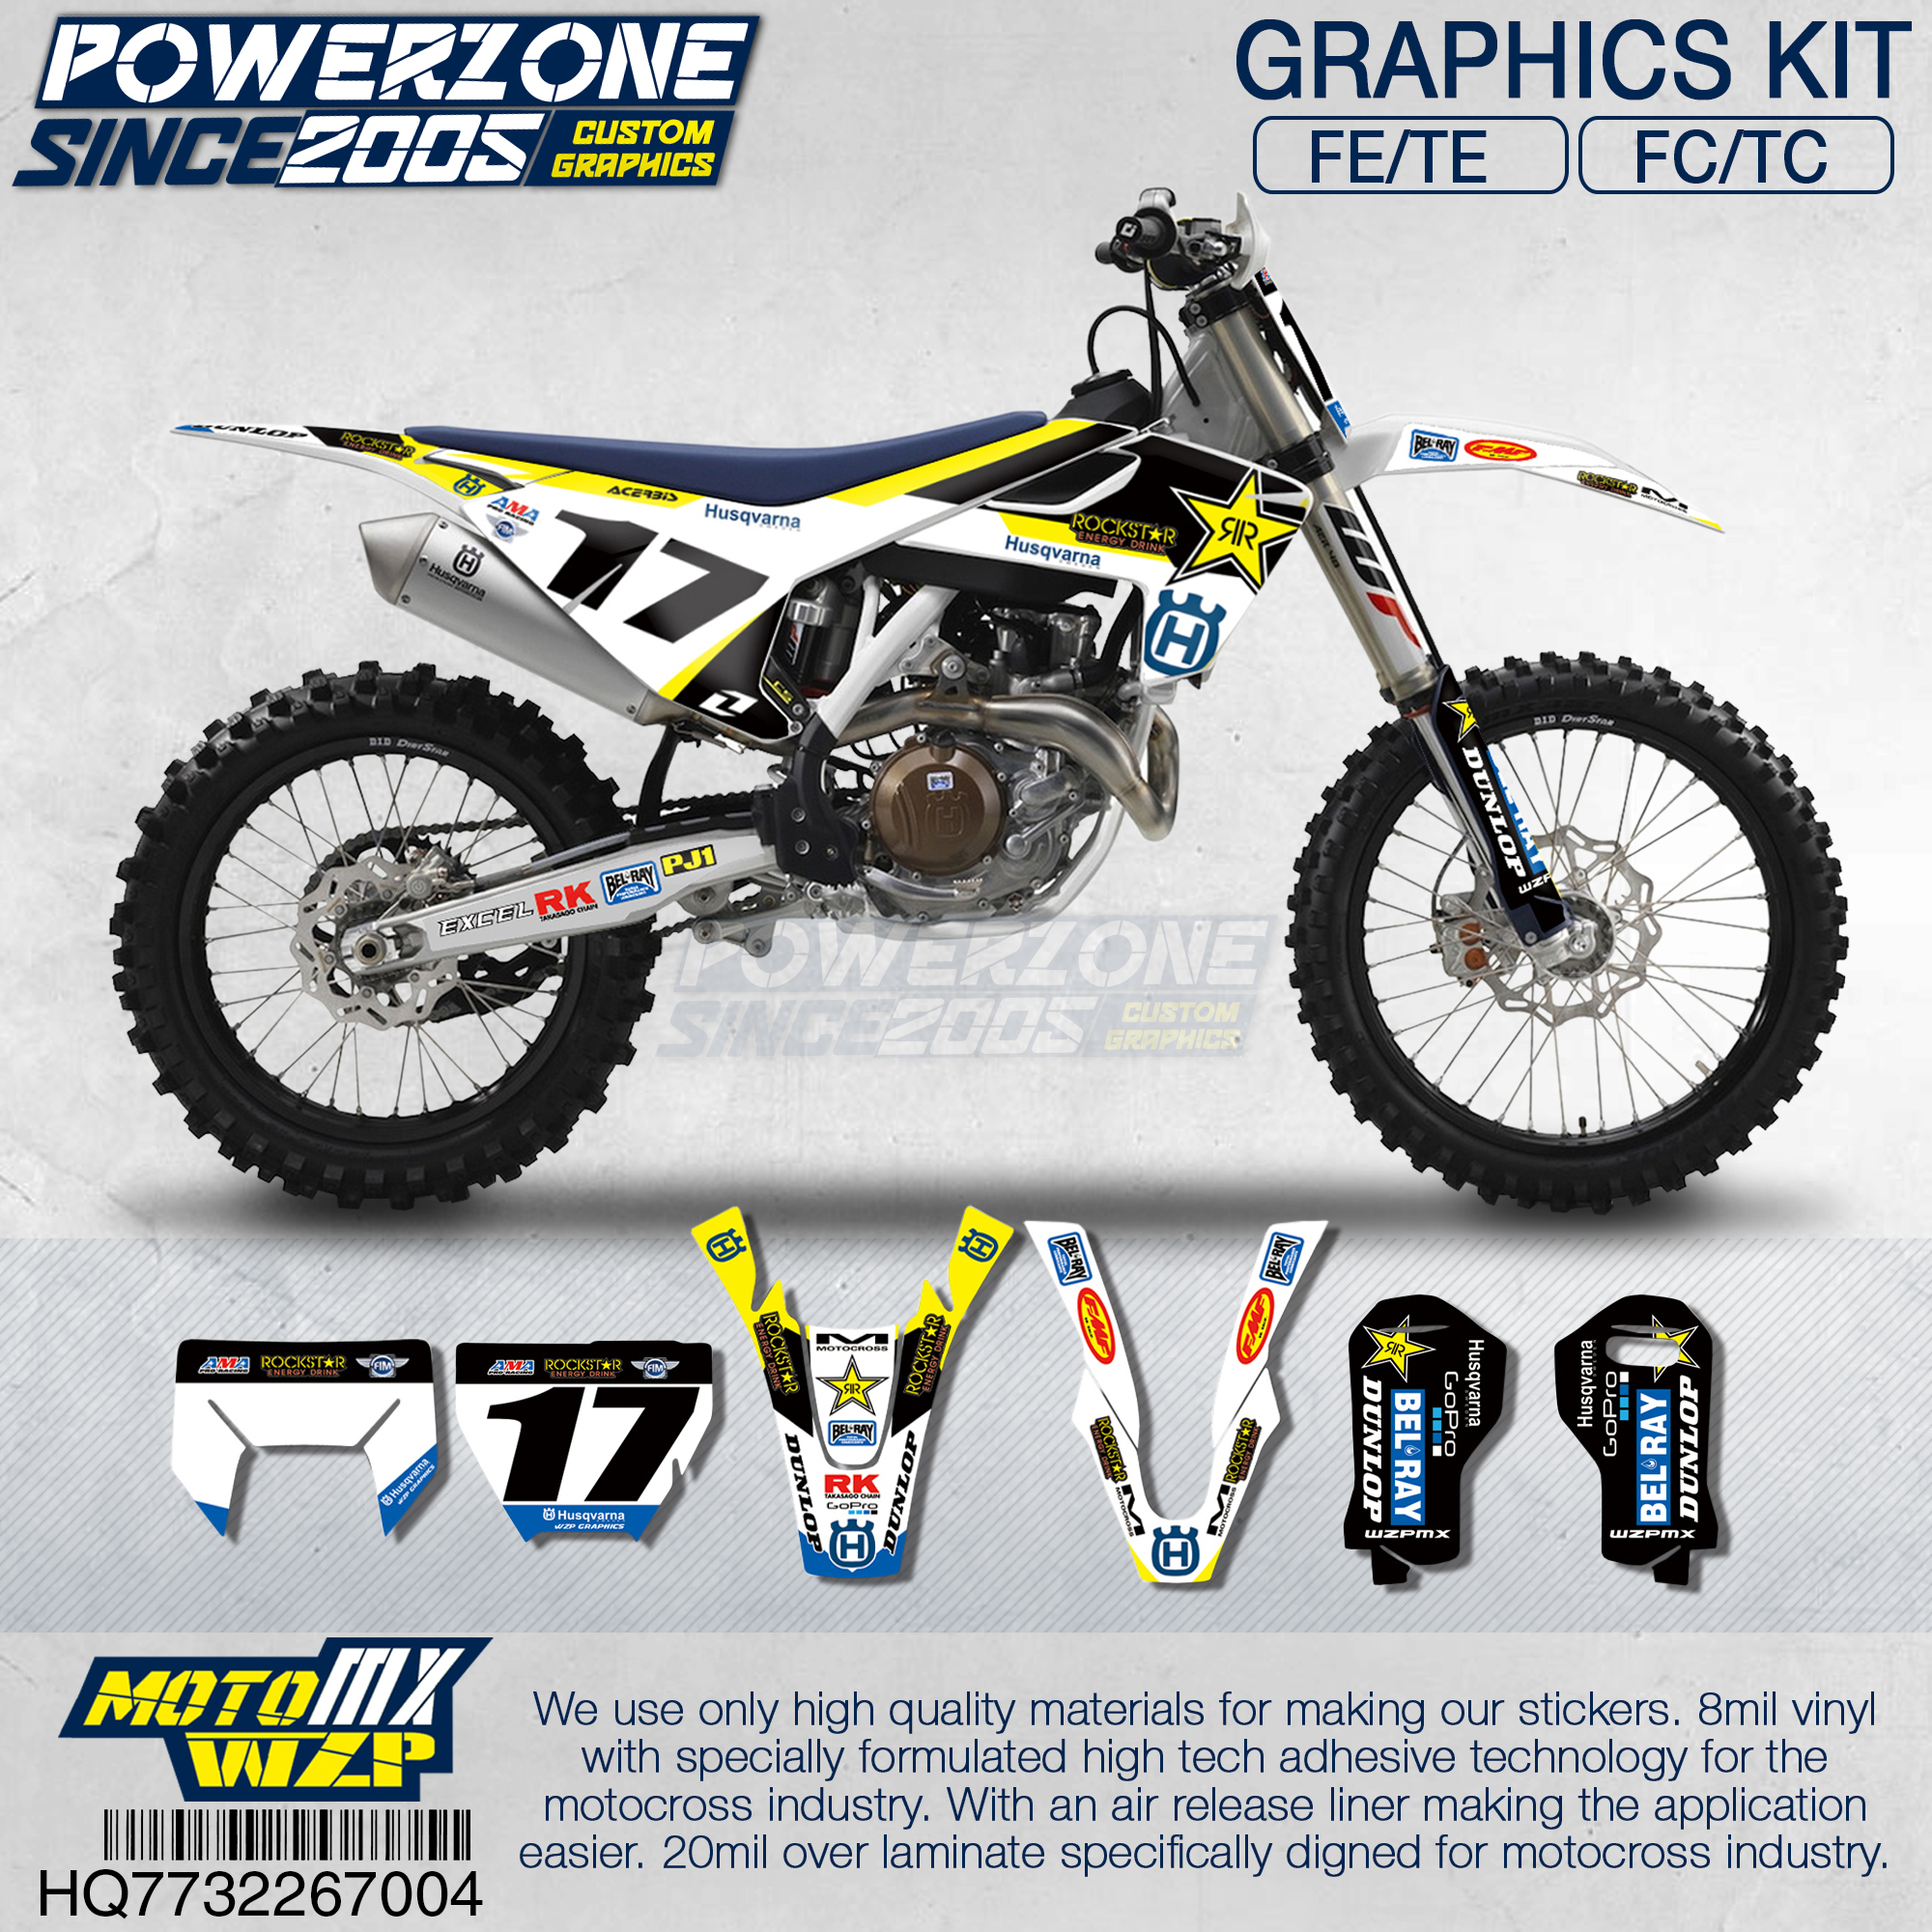 PowerZone Team Graphics Backgrounds Decals 3M Custom Stickers Roc Kit For Husqvarna 2017 18 19 FE